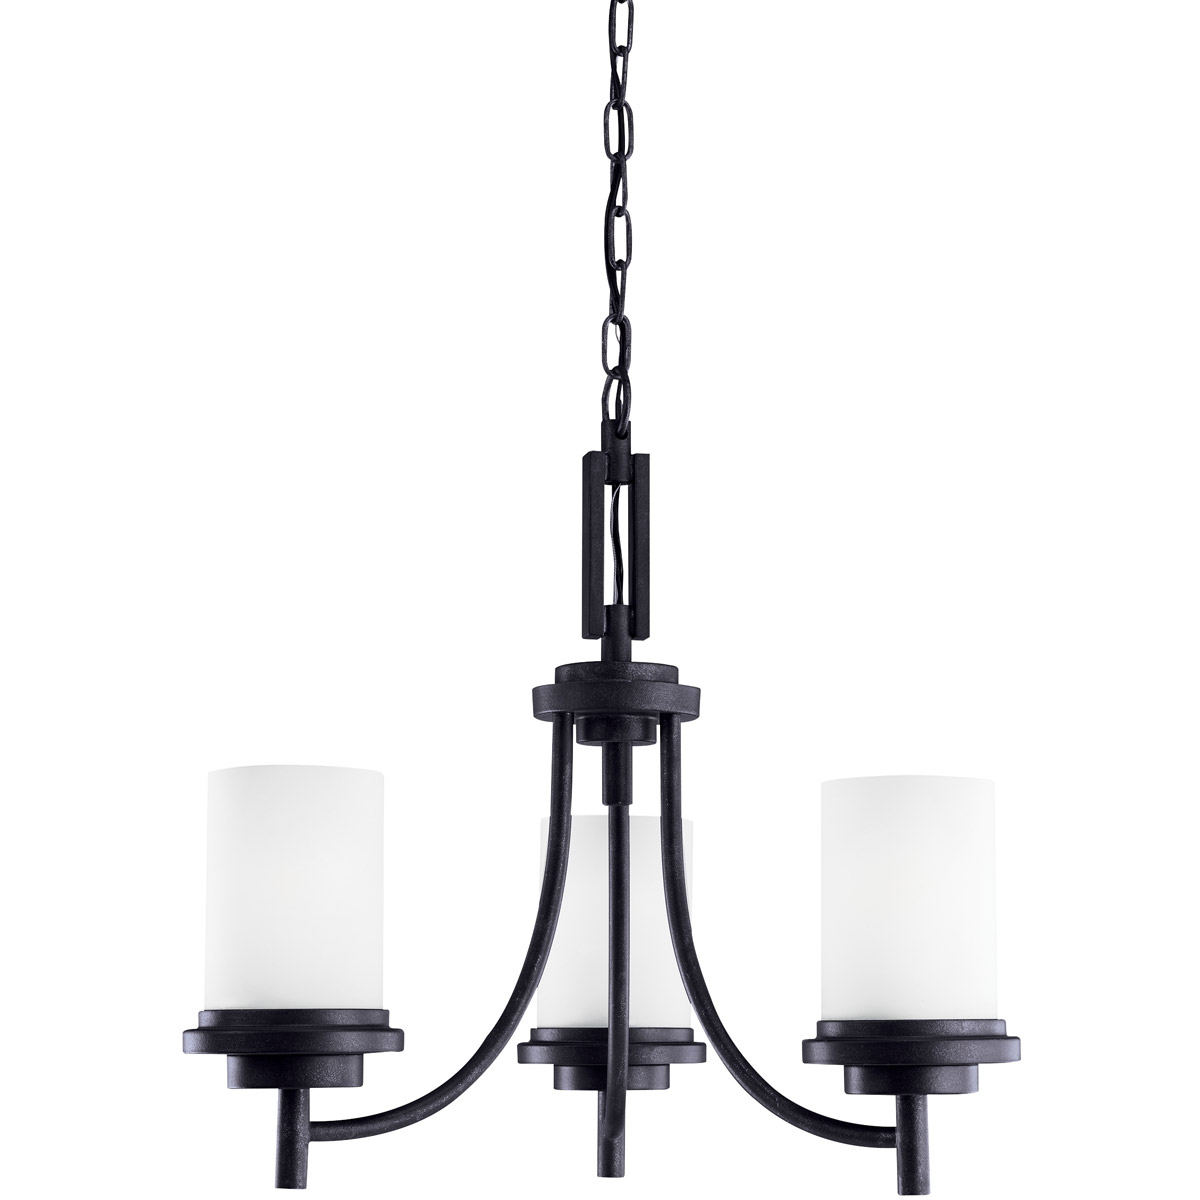 Sea Gull 31660BLE-839 Winnetka 3 Light 21 inch Blacksmith Chandelier Single-Tier Ceiling Light in Satin Etched Glass, Fluorescent photo